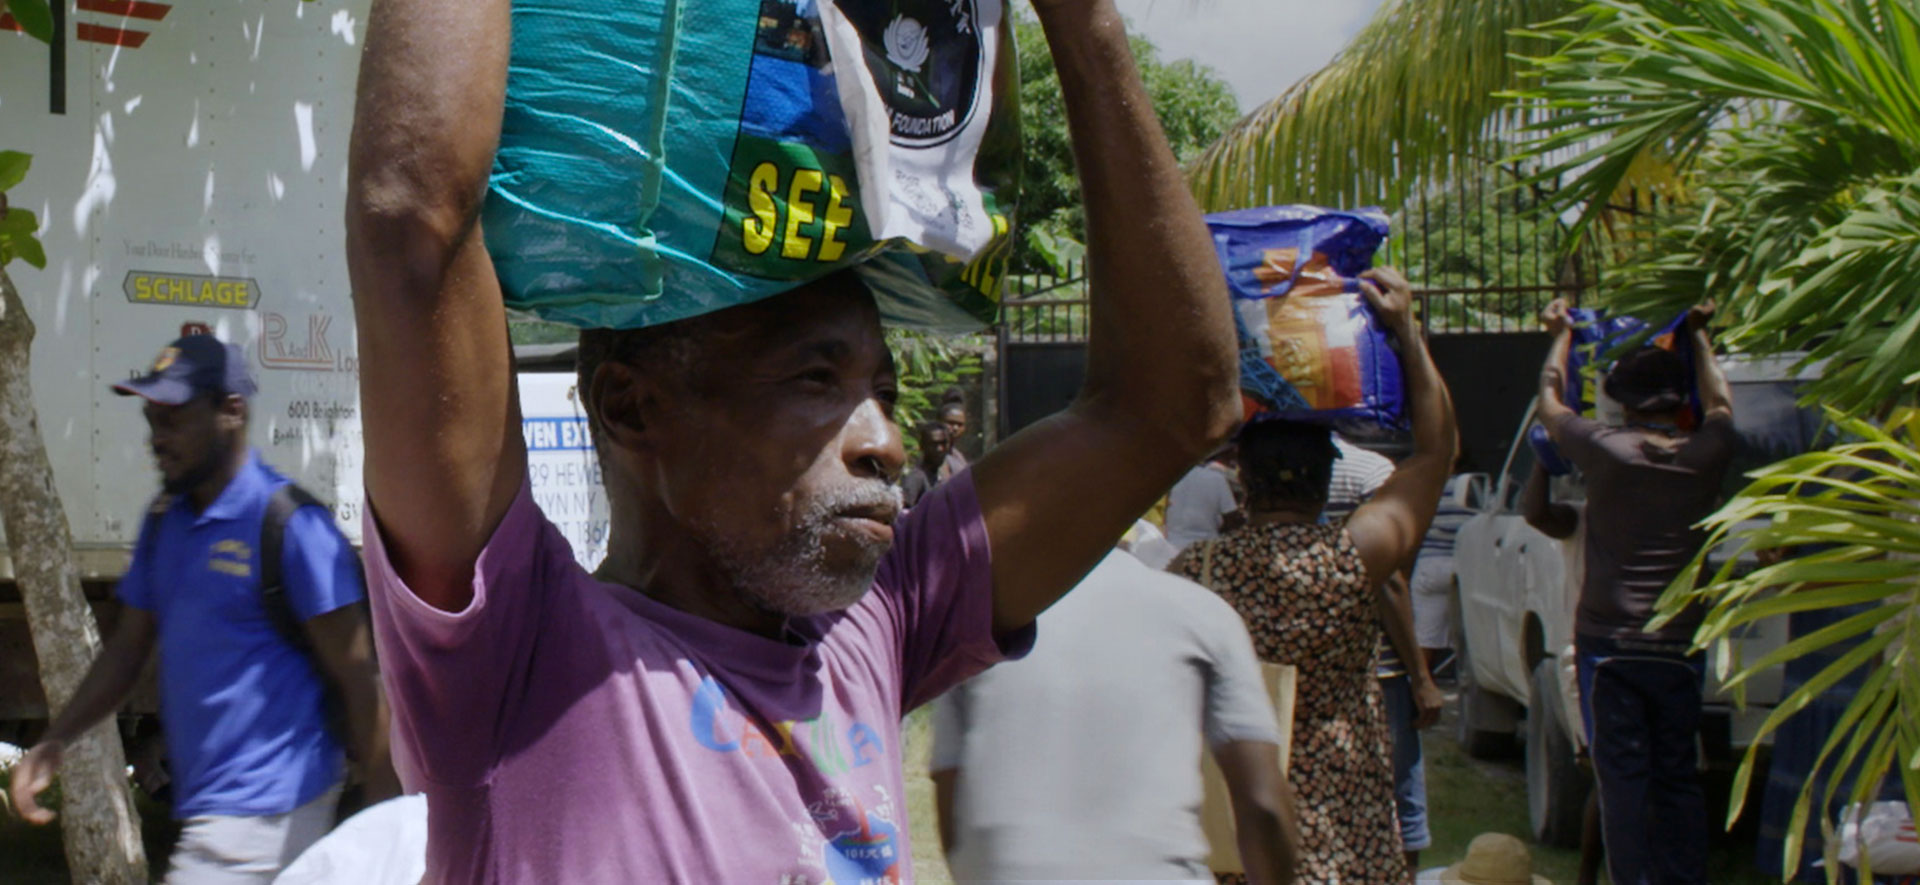 Relieving Hunger and Bringing Joy in Les Cayes, Haiti